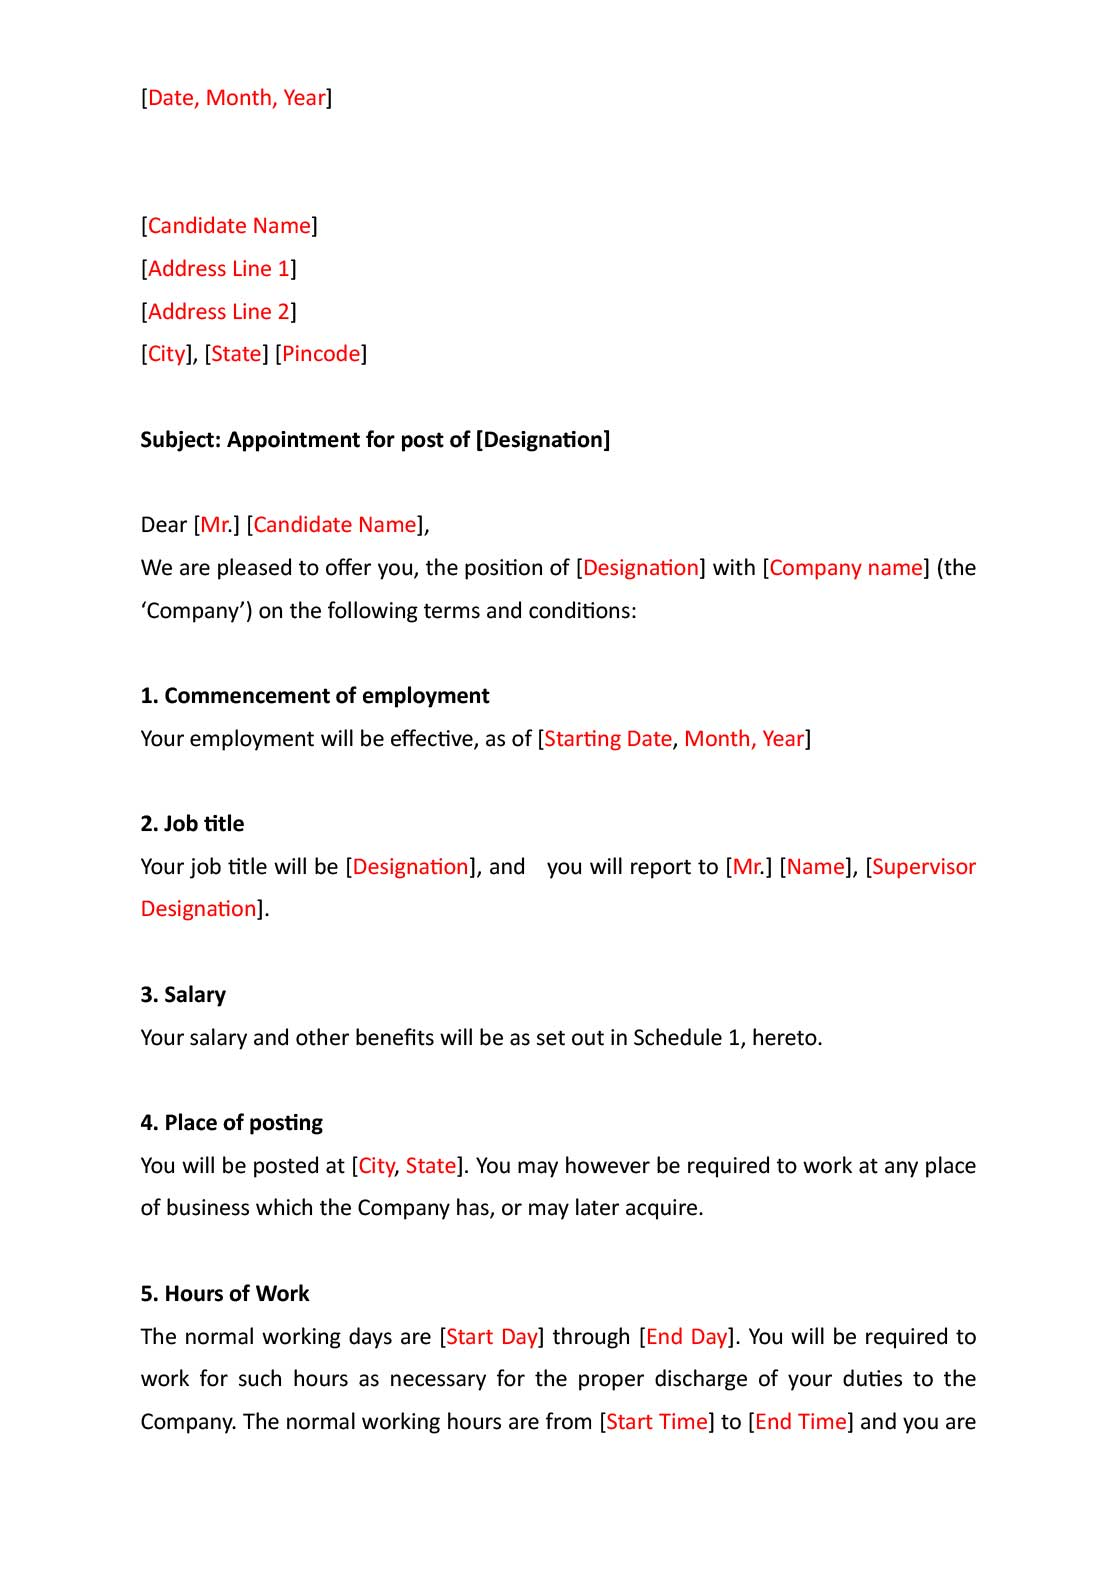 Appointment letter format indiafilings document center sample appointment letter spiritdancerdesigns Image collections